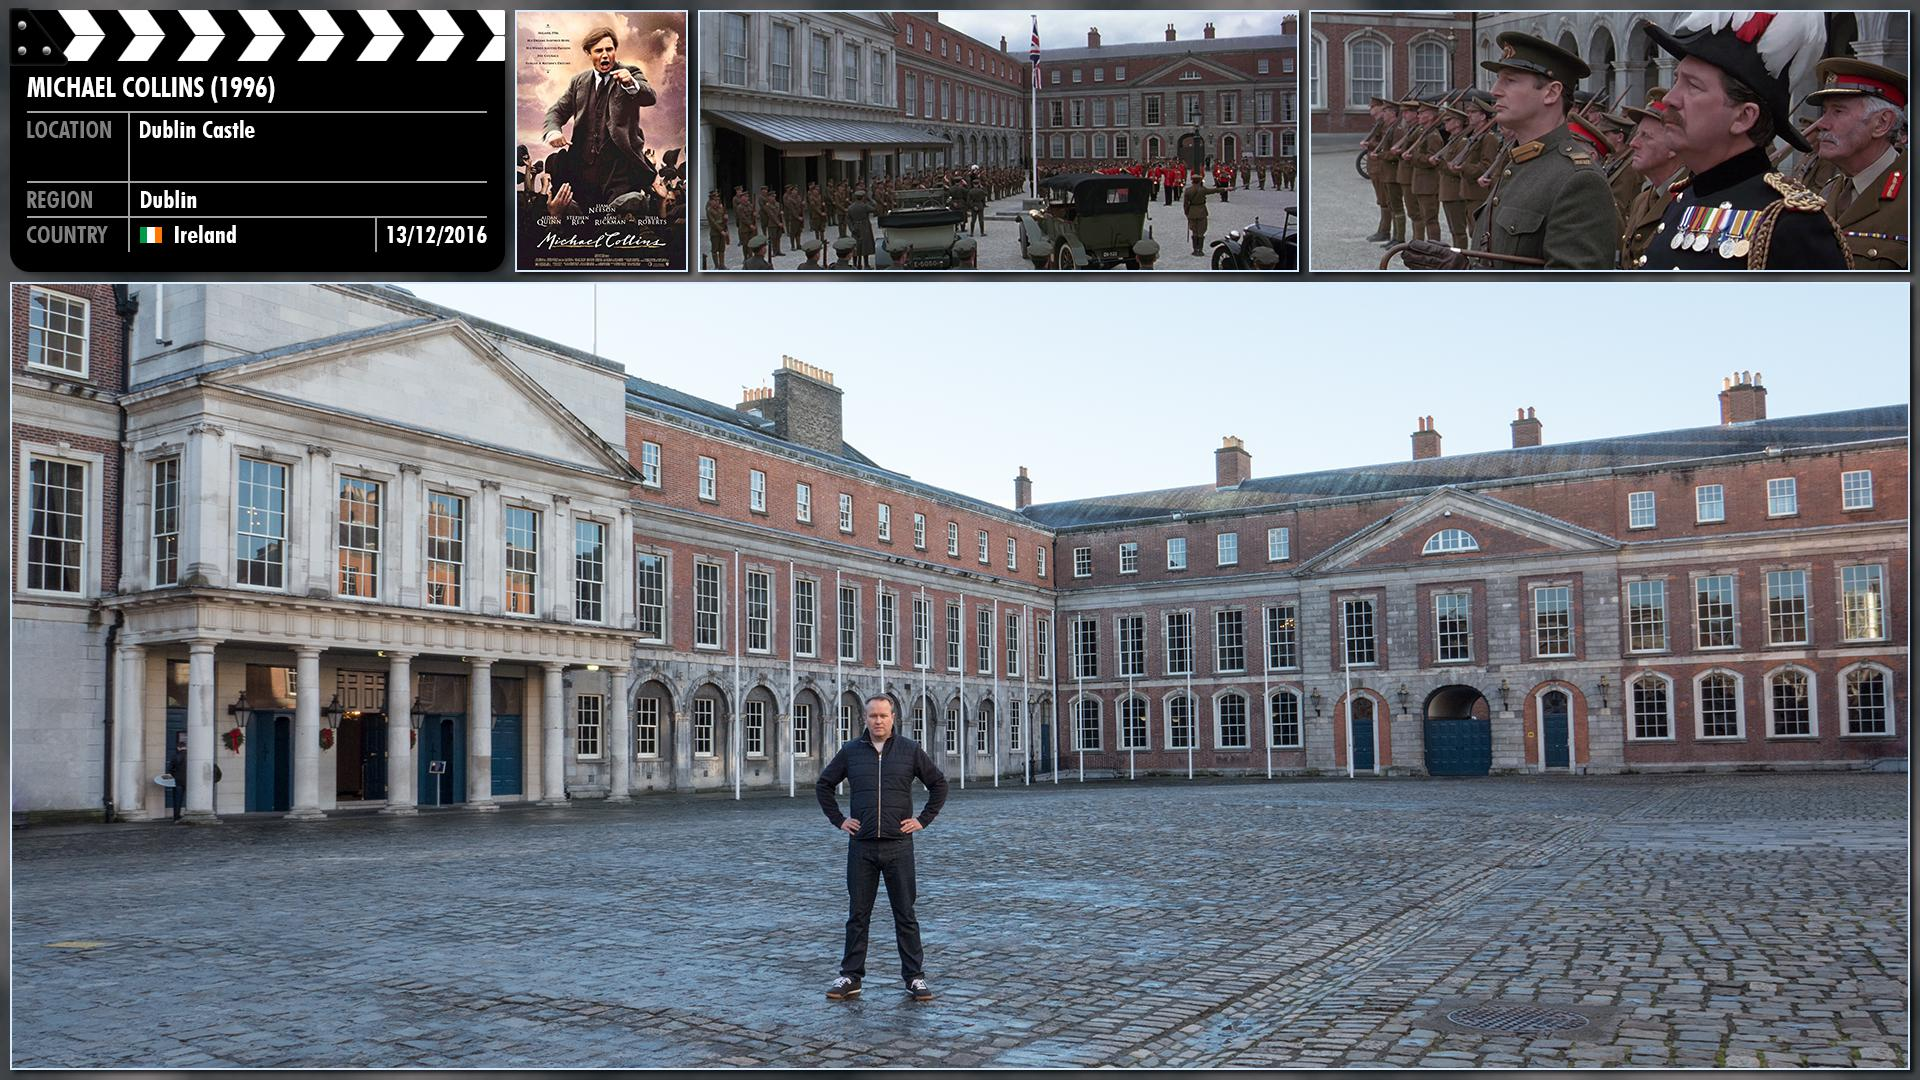 Filming location photo for Michael Collins (1996) 2 of 3